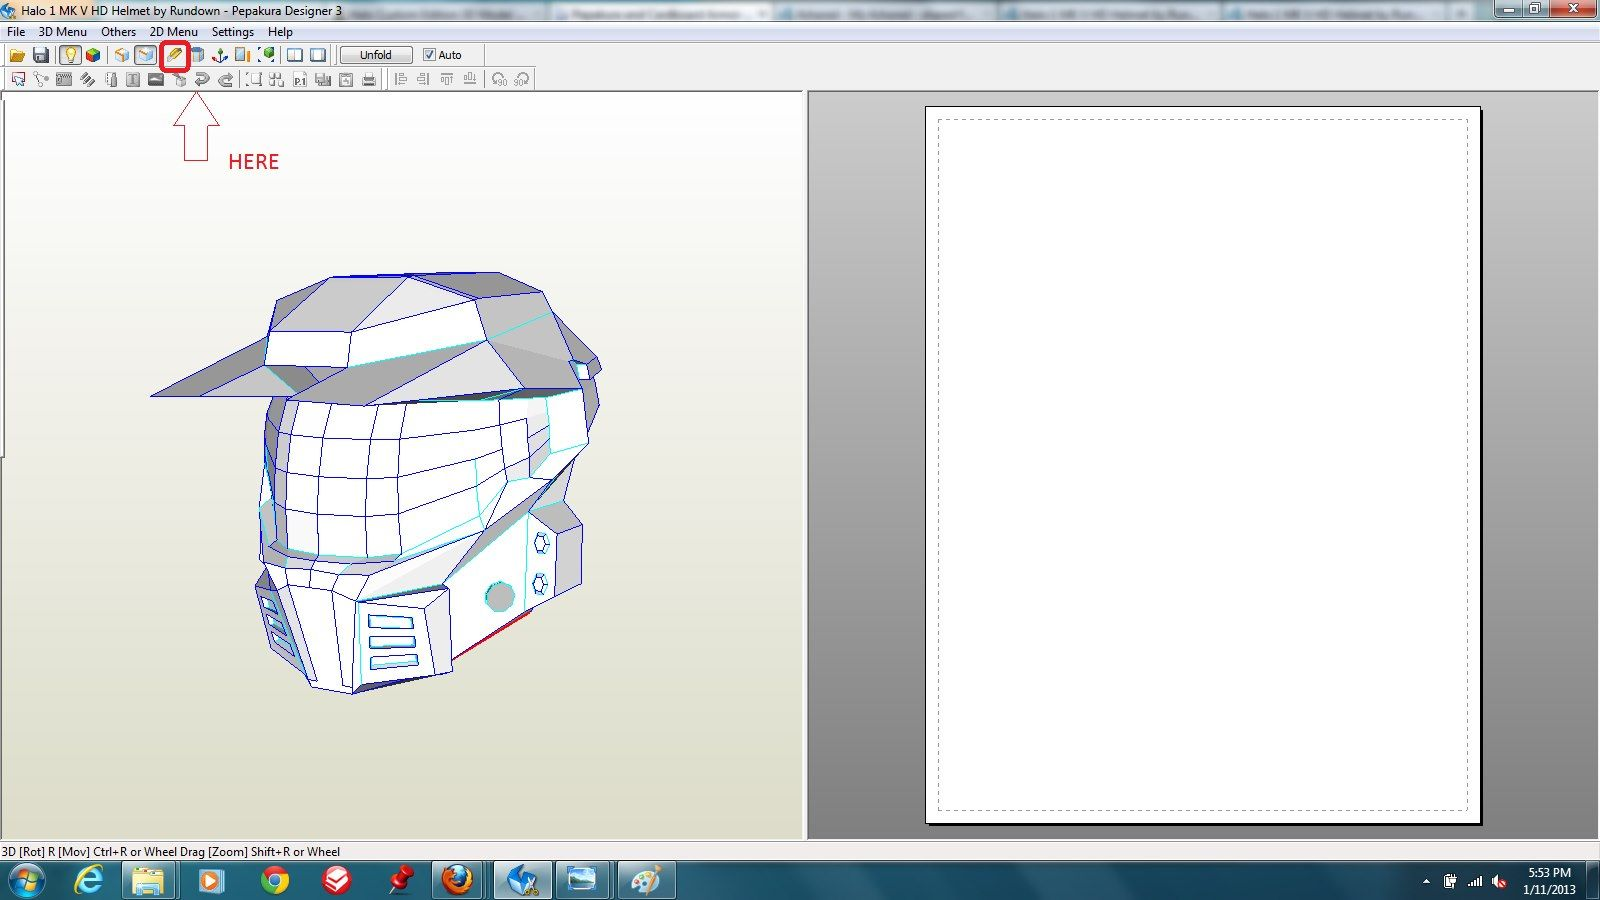 Tutorial How To Unfold Projects In Pepakura Designer By Spartansonny